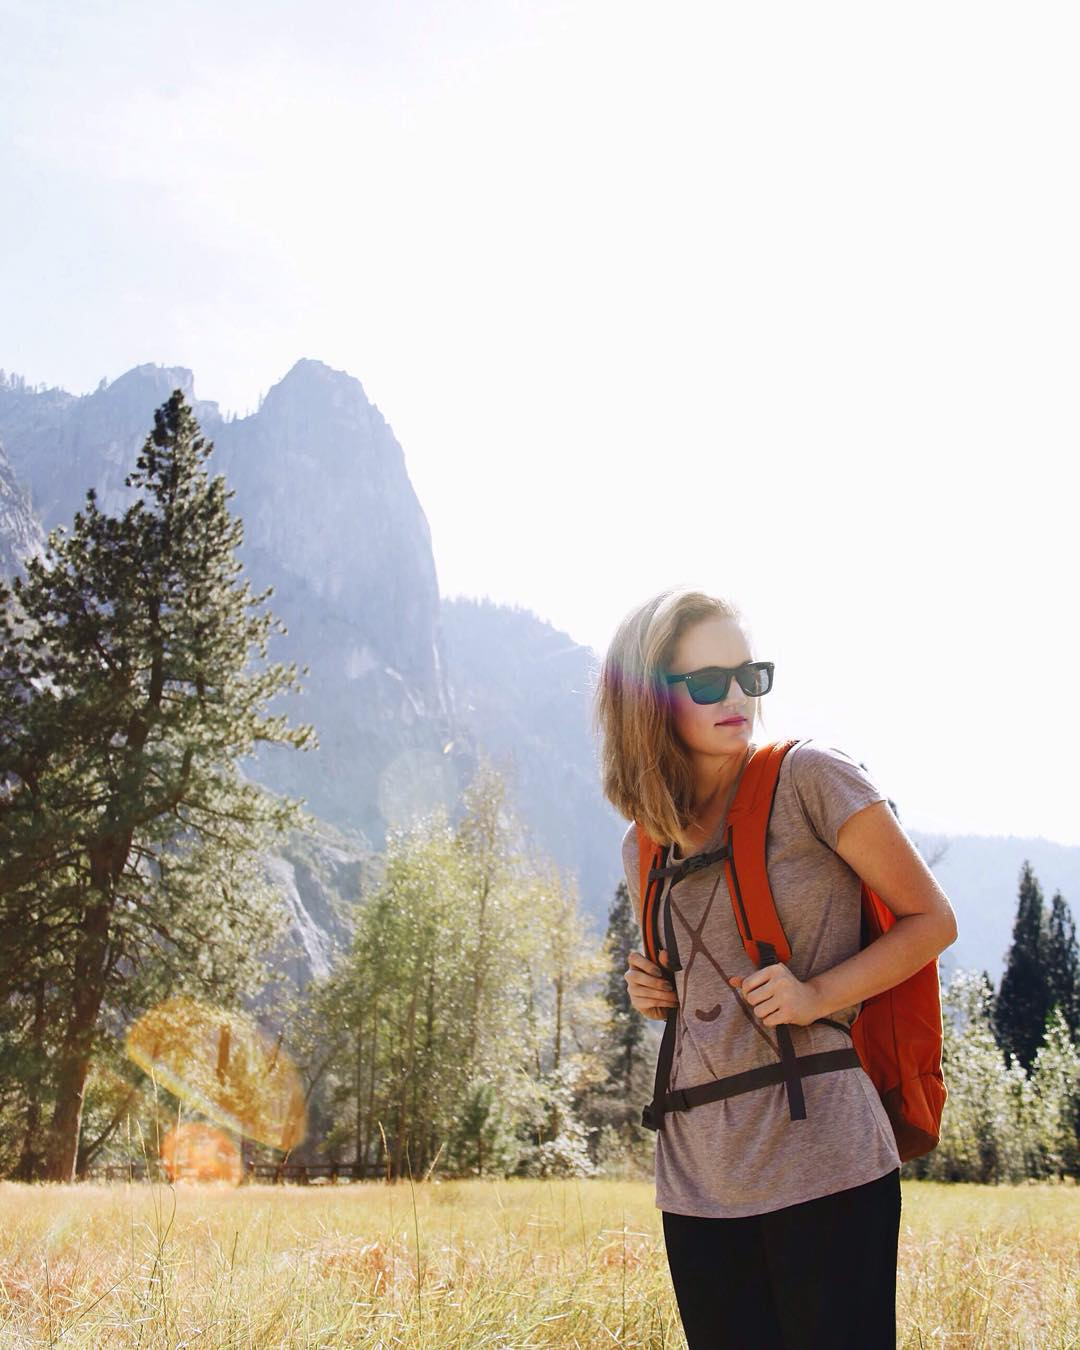 @charityvictoria in Yosemite wearing The Ontario // thanks for the photo @alaskangeles! #NatureOfProof